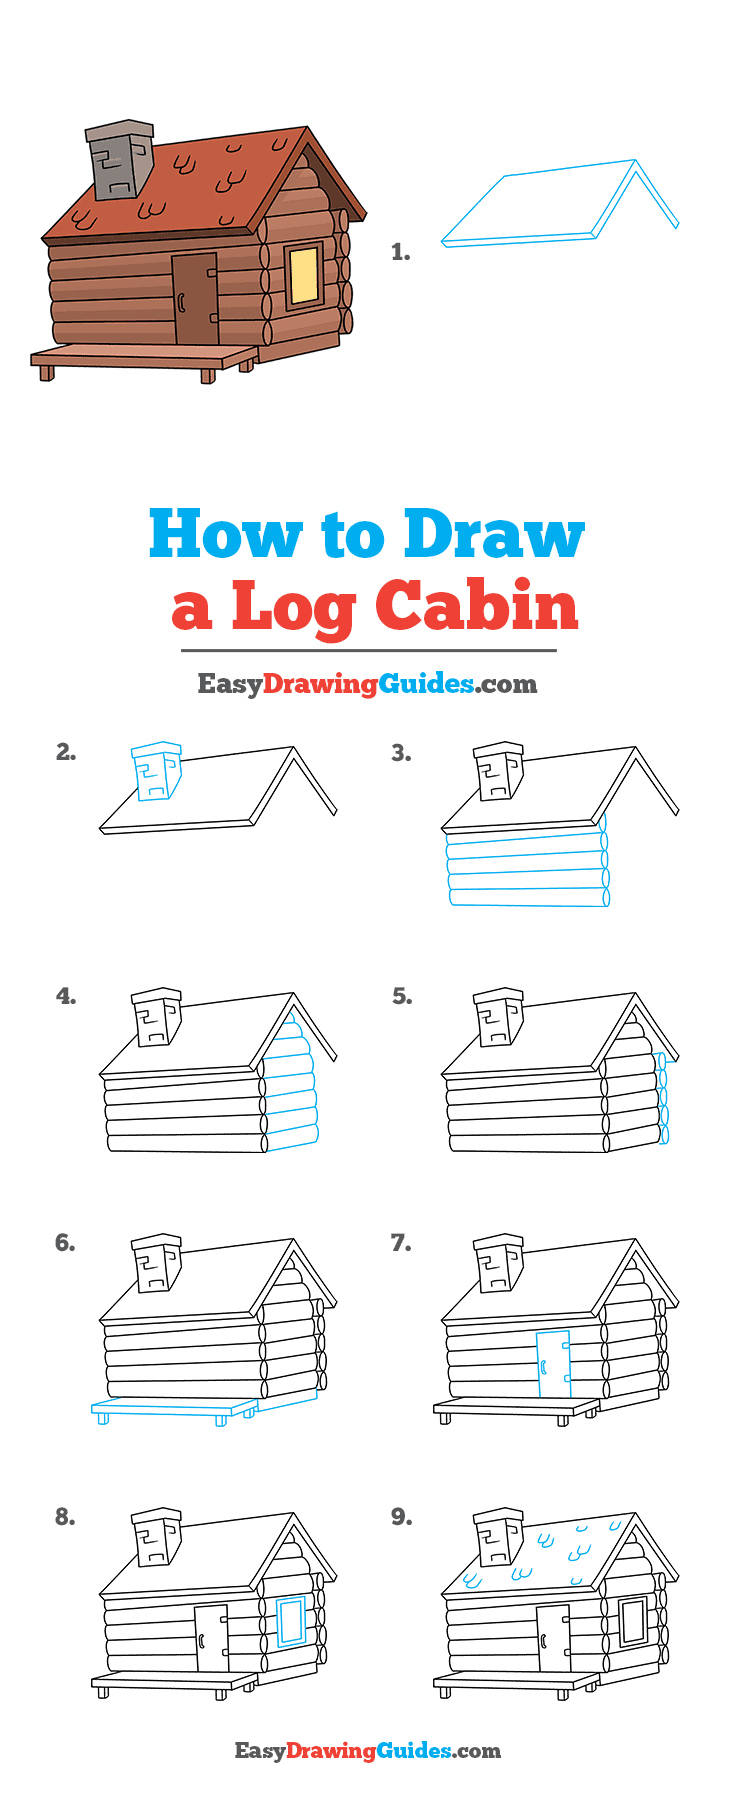 How to Draw Log Cabin